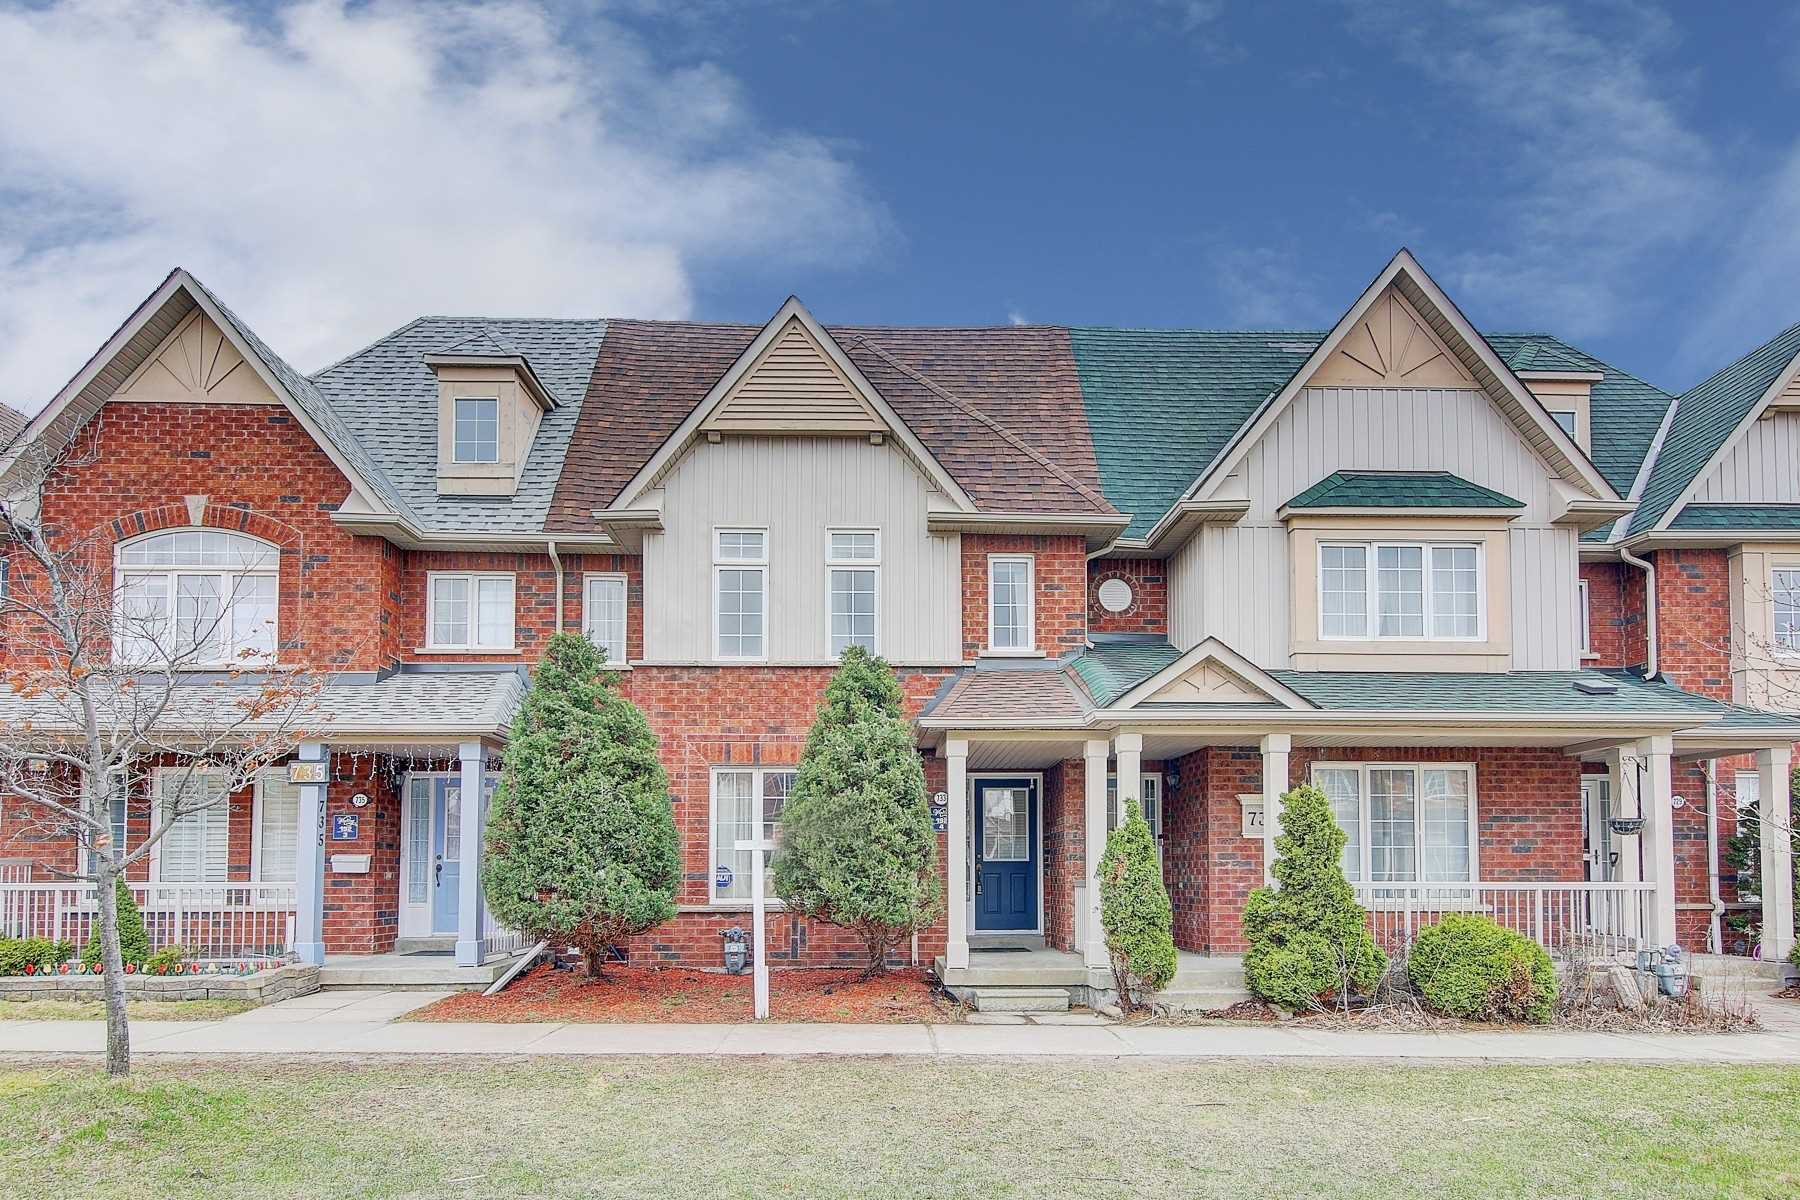 Main Photo: 733 Bur Oak Ave in Markham: Freehold for sale : MLS®# N4741698